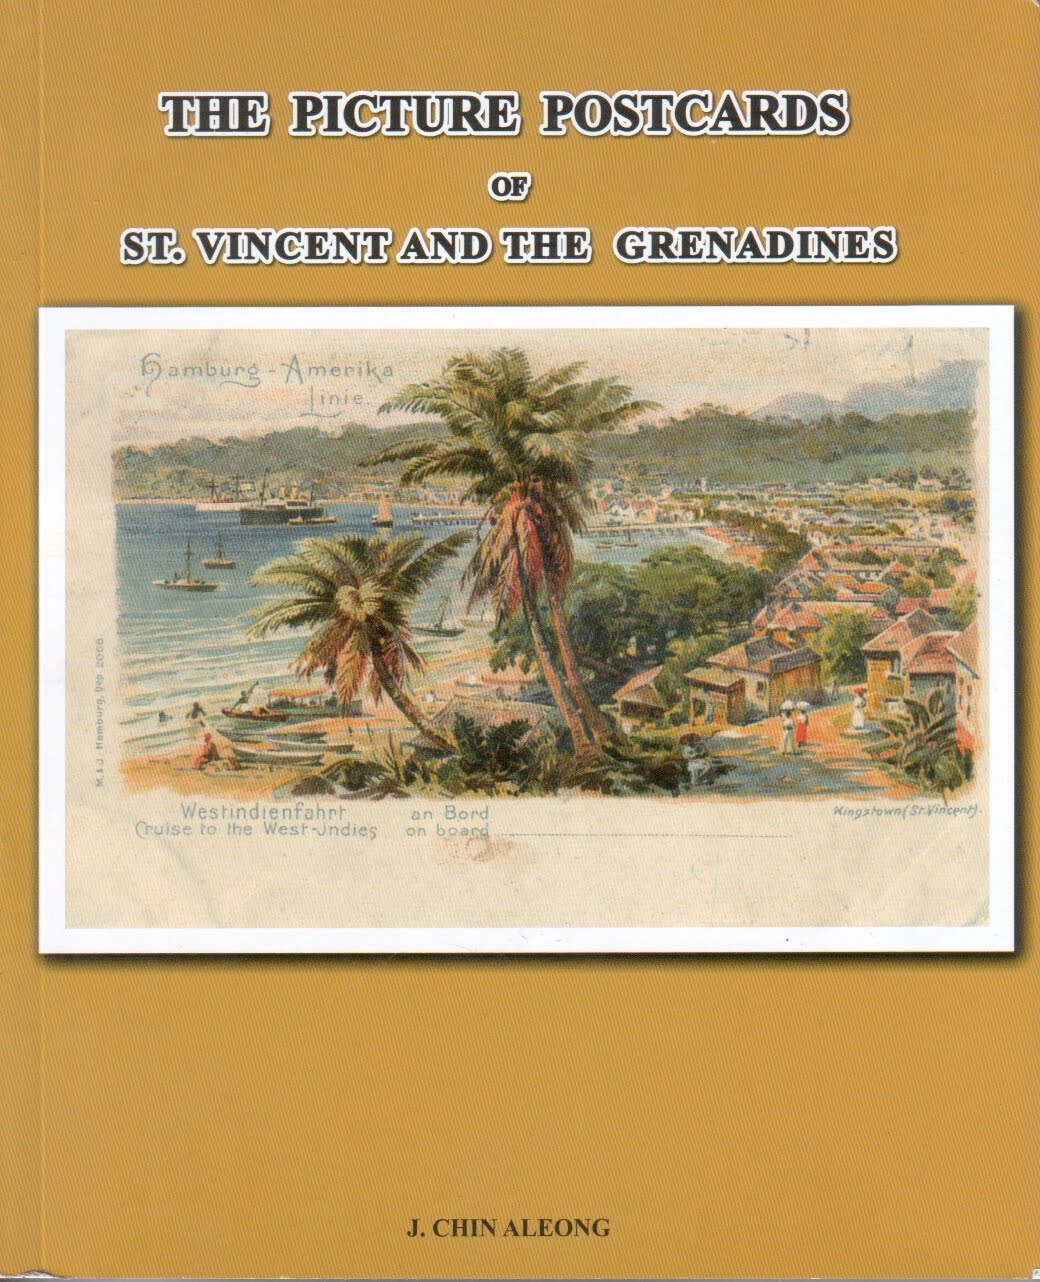 a history of saint vincent and the grenadines Get information, facts, and pictures about saint vincent and the grenadines at encyclopediacom make research projects and school reports about saint vincent and the grenadines easy with credible articles from our free, online encyclopedia and dictionary.